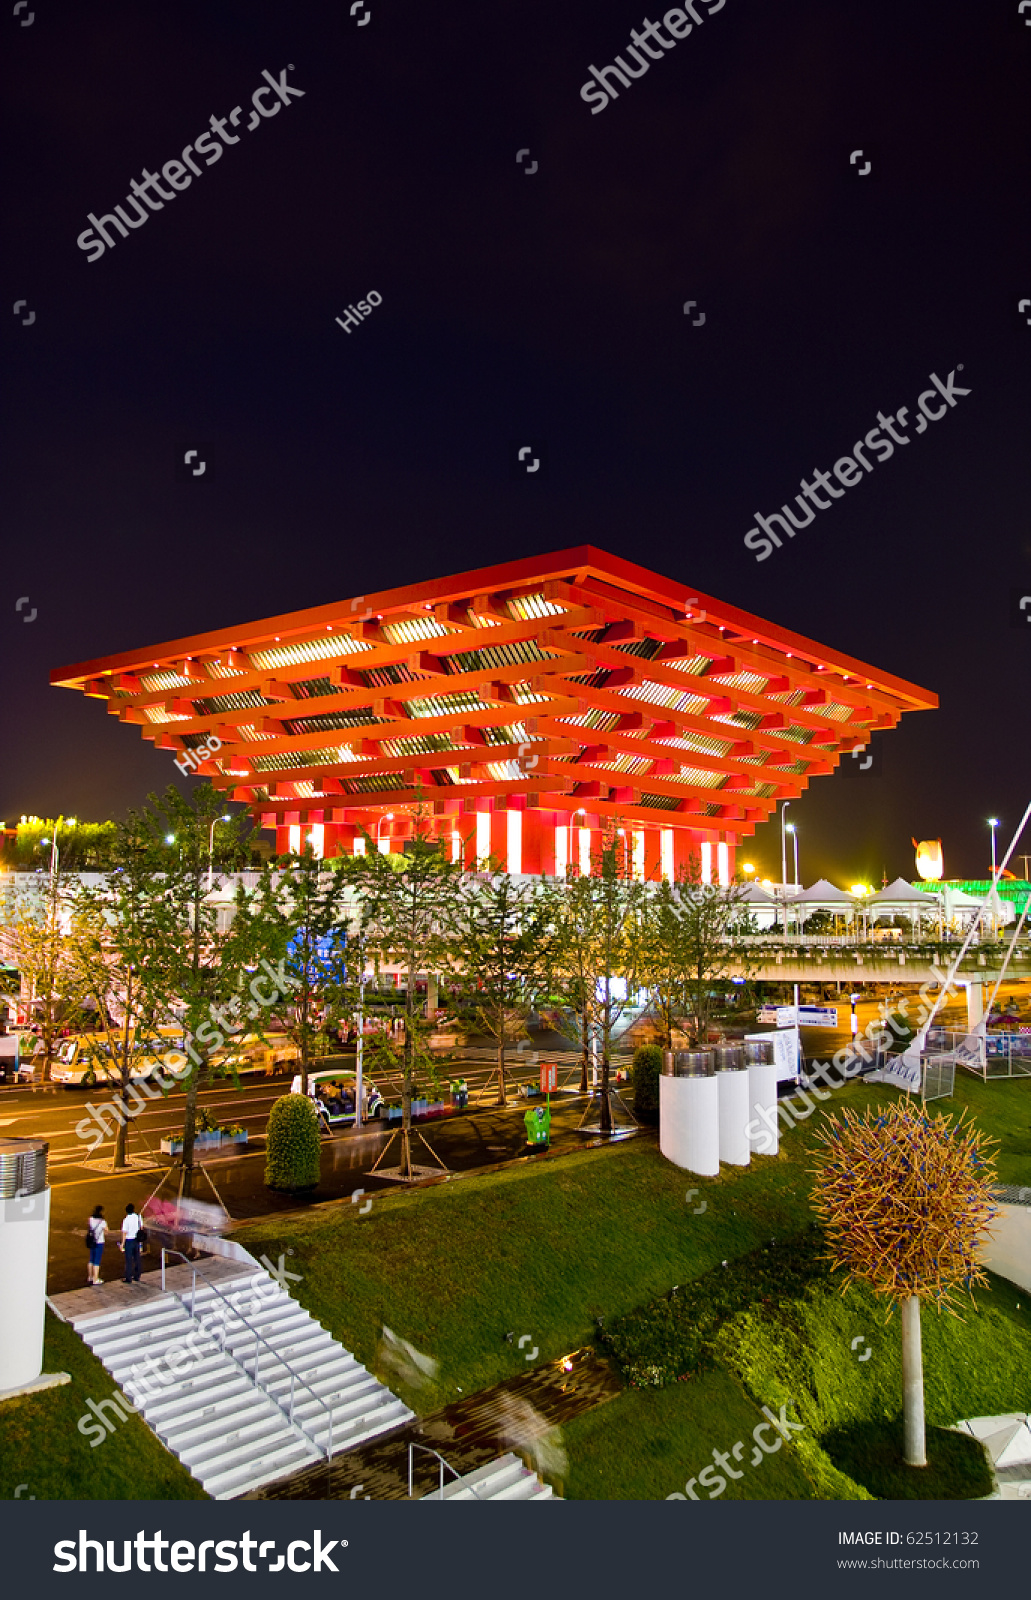 Shanghai August 15 Expo China Pavilion Stock Photo 62512132 ...